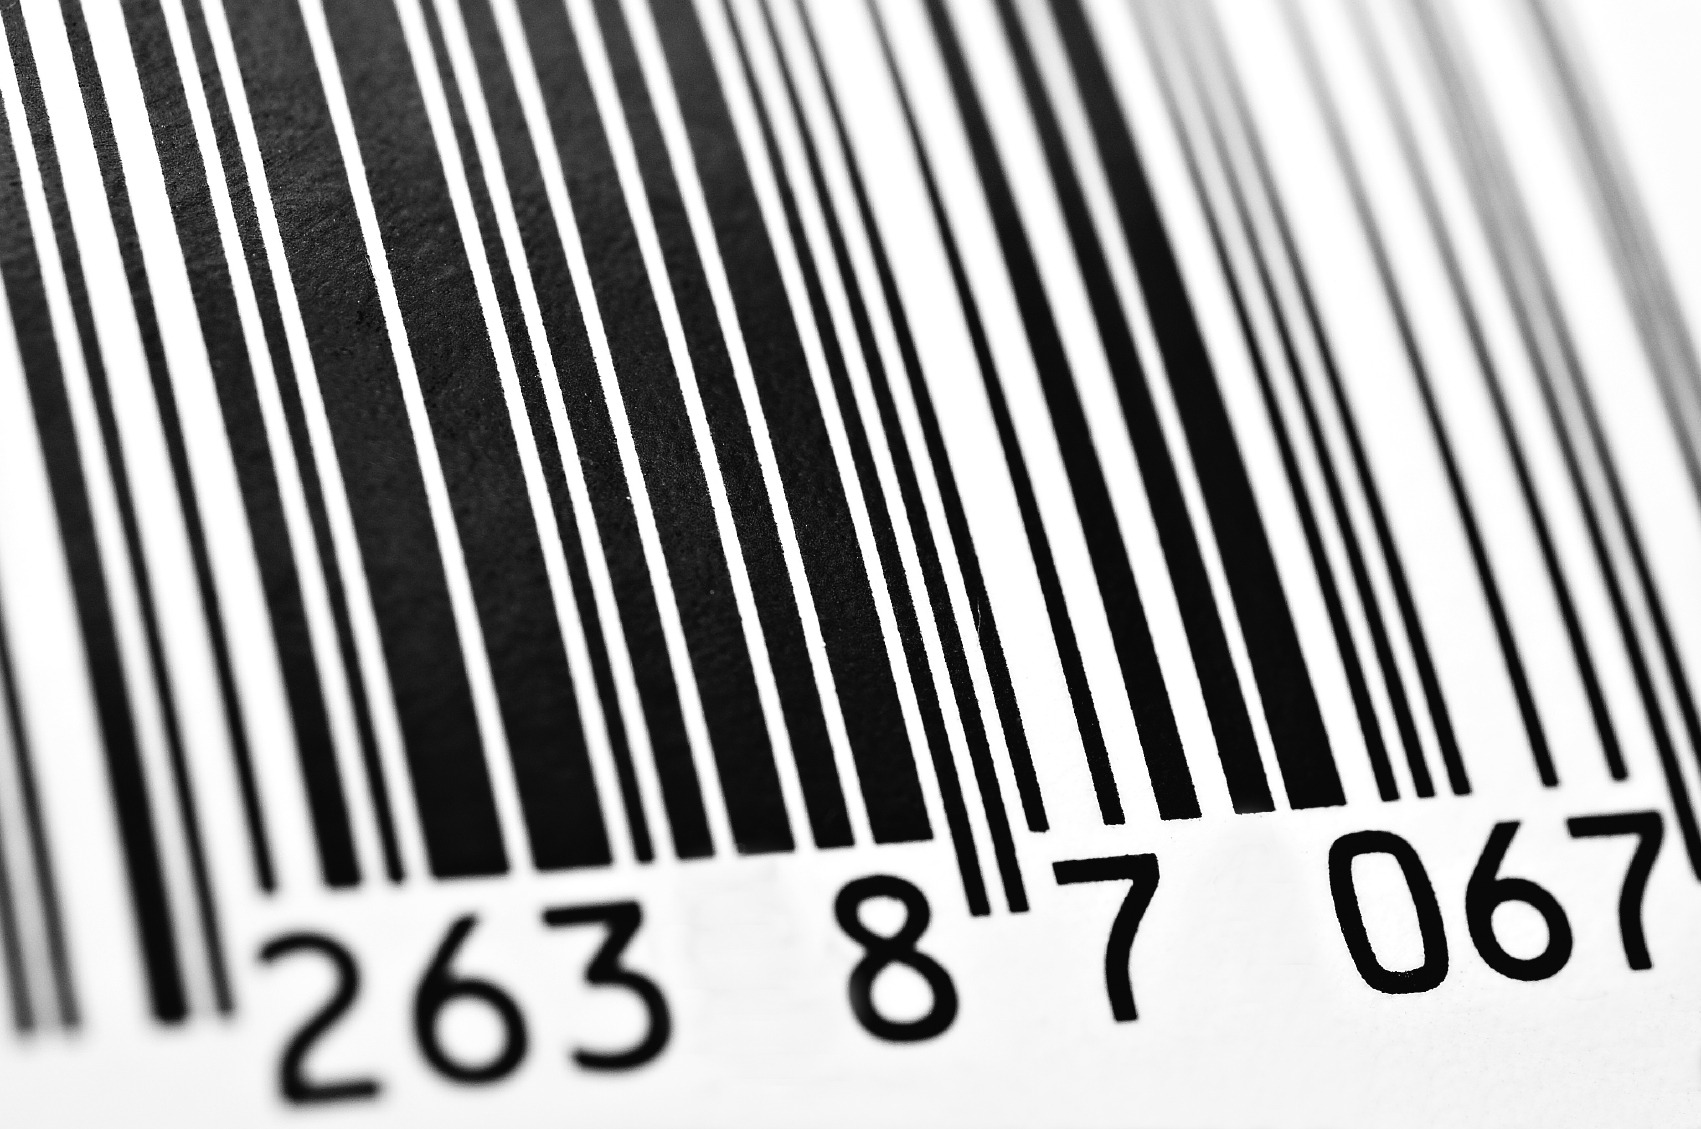 The Unexpected Impact of the First Bar Code